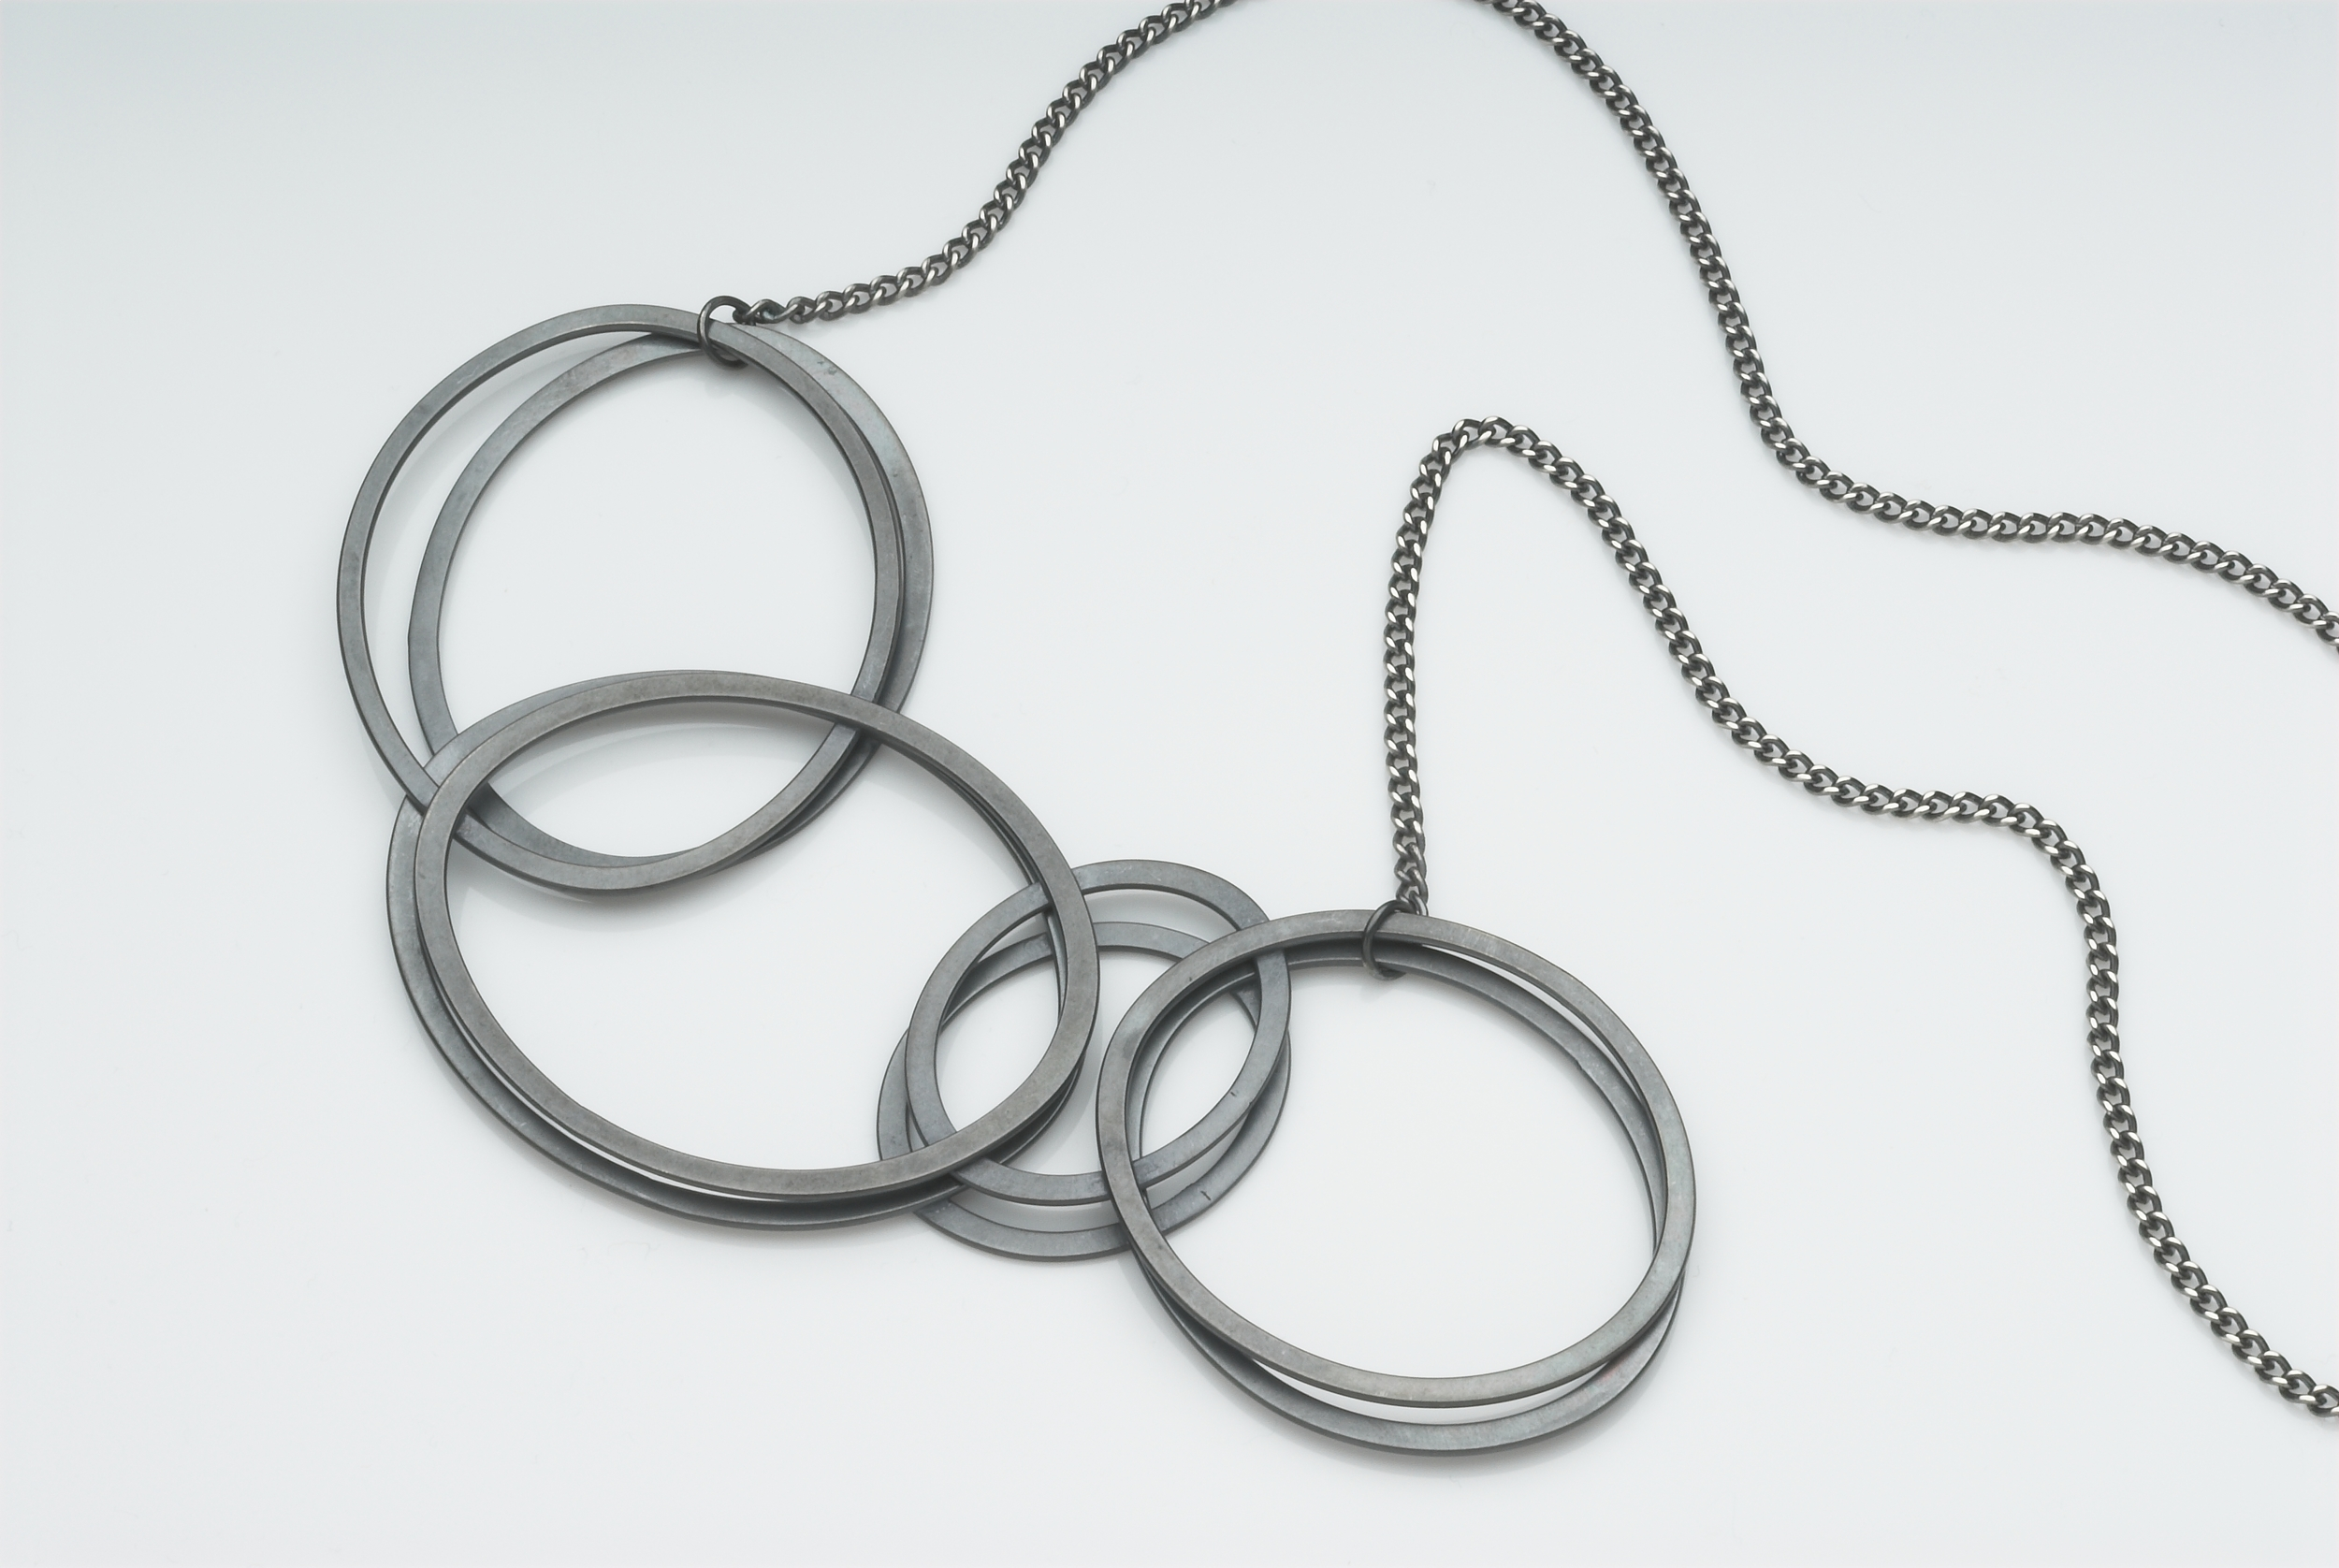 Double 'shadow' necklace, oxidised silver @47cm £340